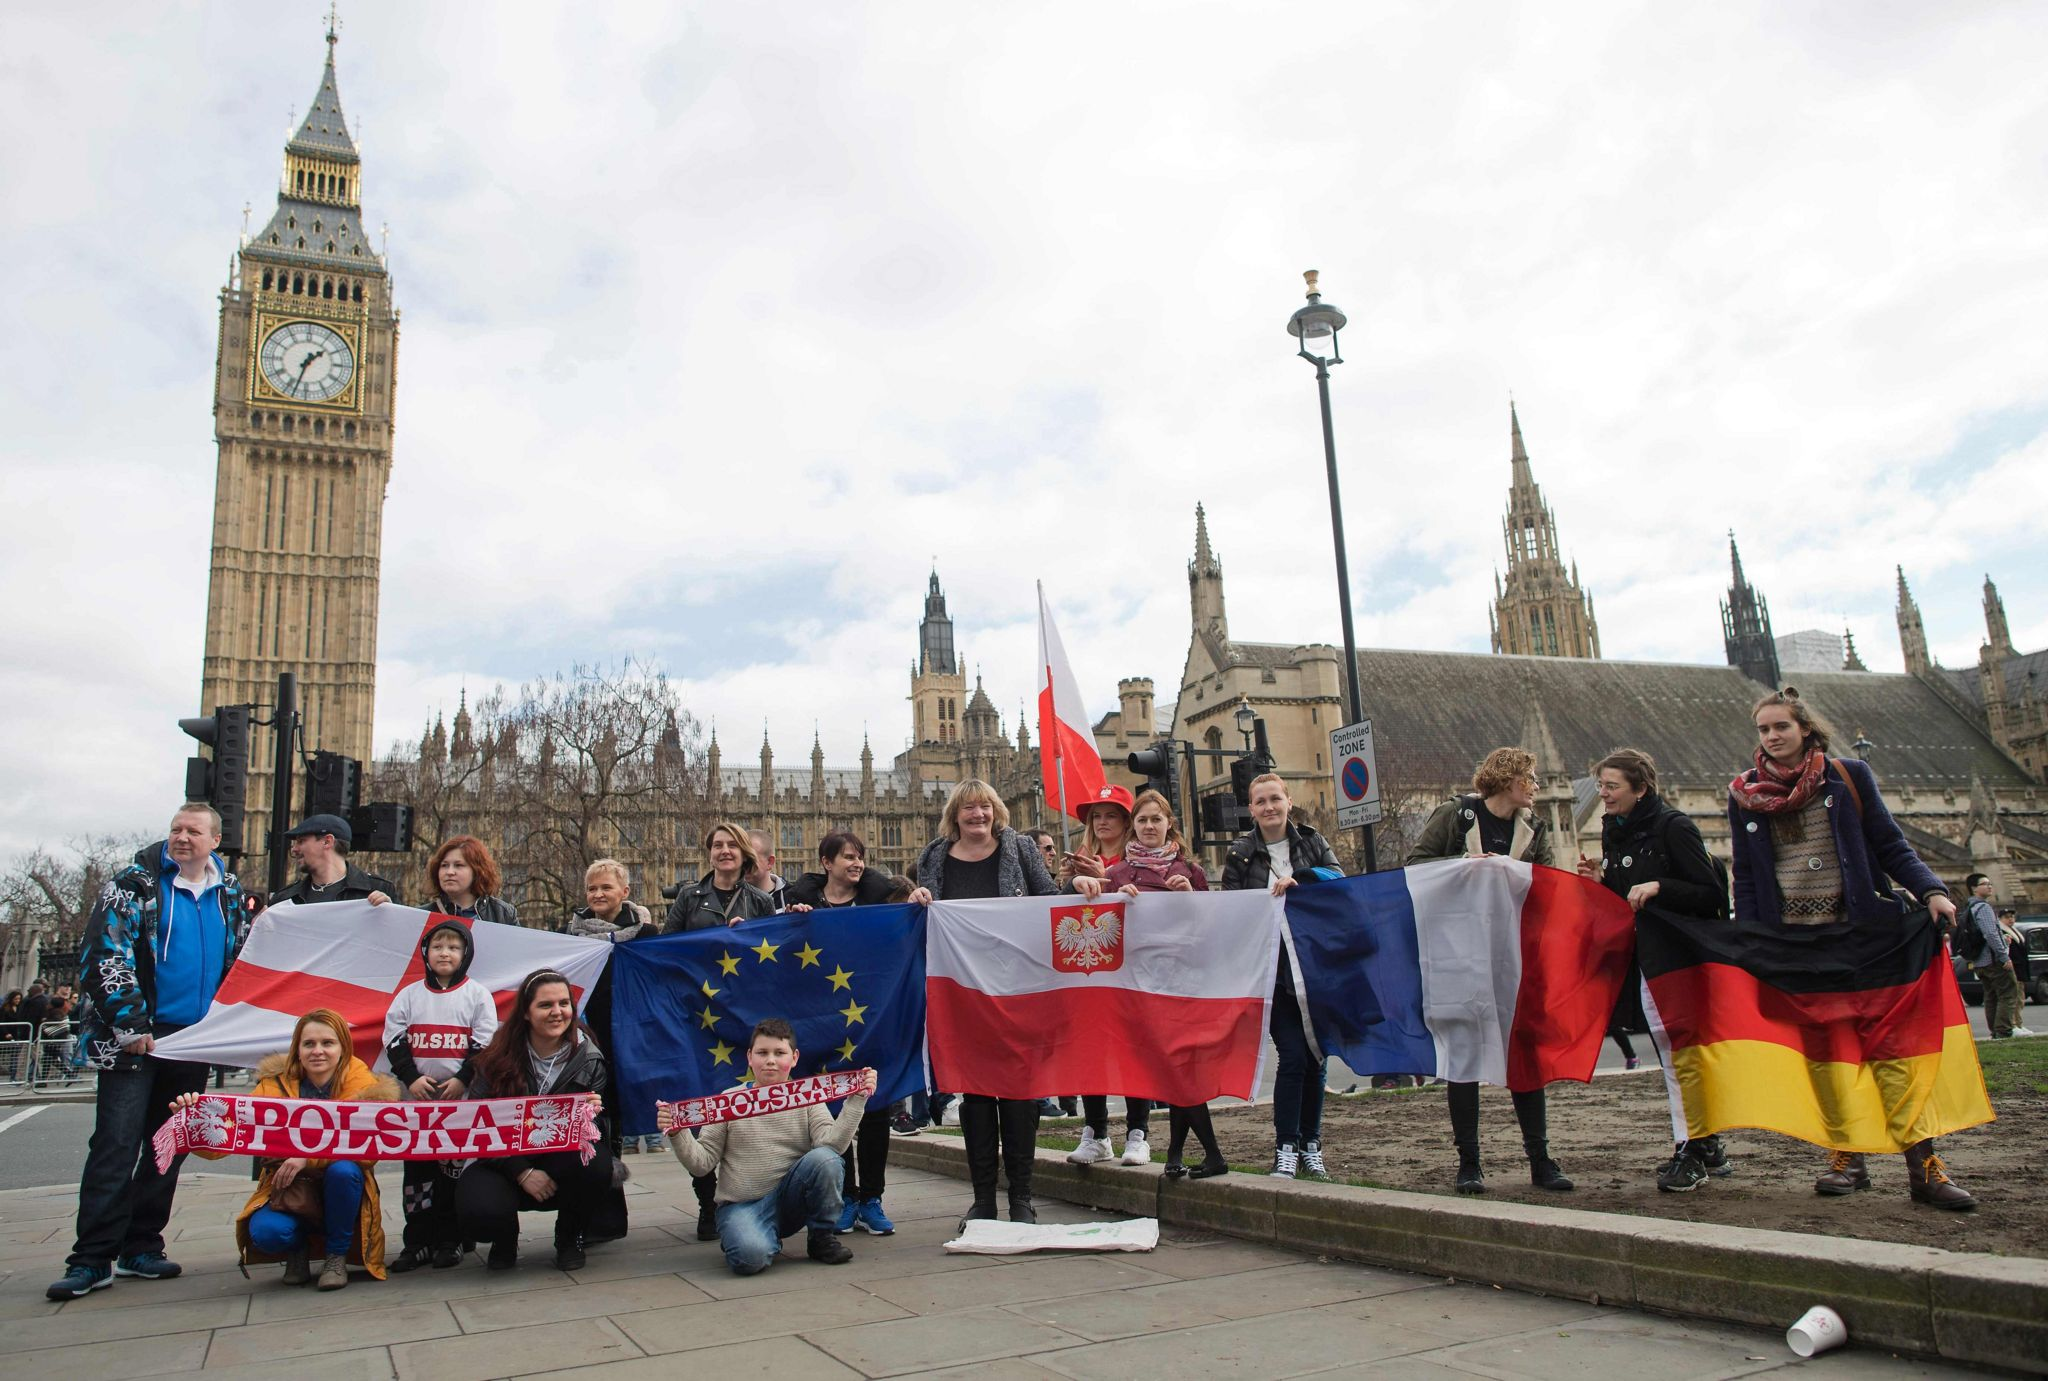 """Protestors pose for a photograph with flags from England, European Union, Poland, France and Germany in front of the Elizabeth Tower, better known as """"Big Ben"""", near the Houses of Parliament during a """"Flag Mob"""" demonstration in Parliament Square in central London on 20 February 2017"""